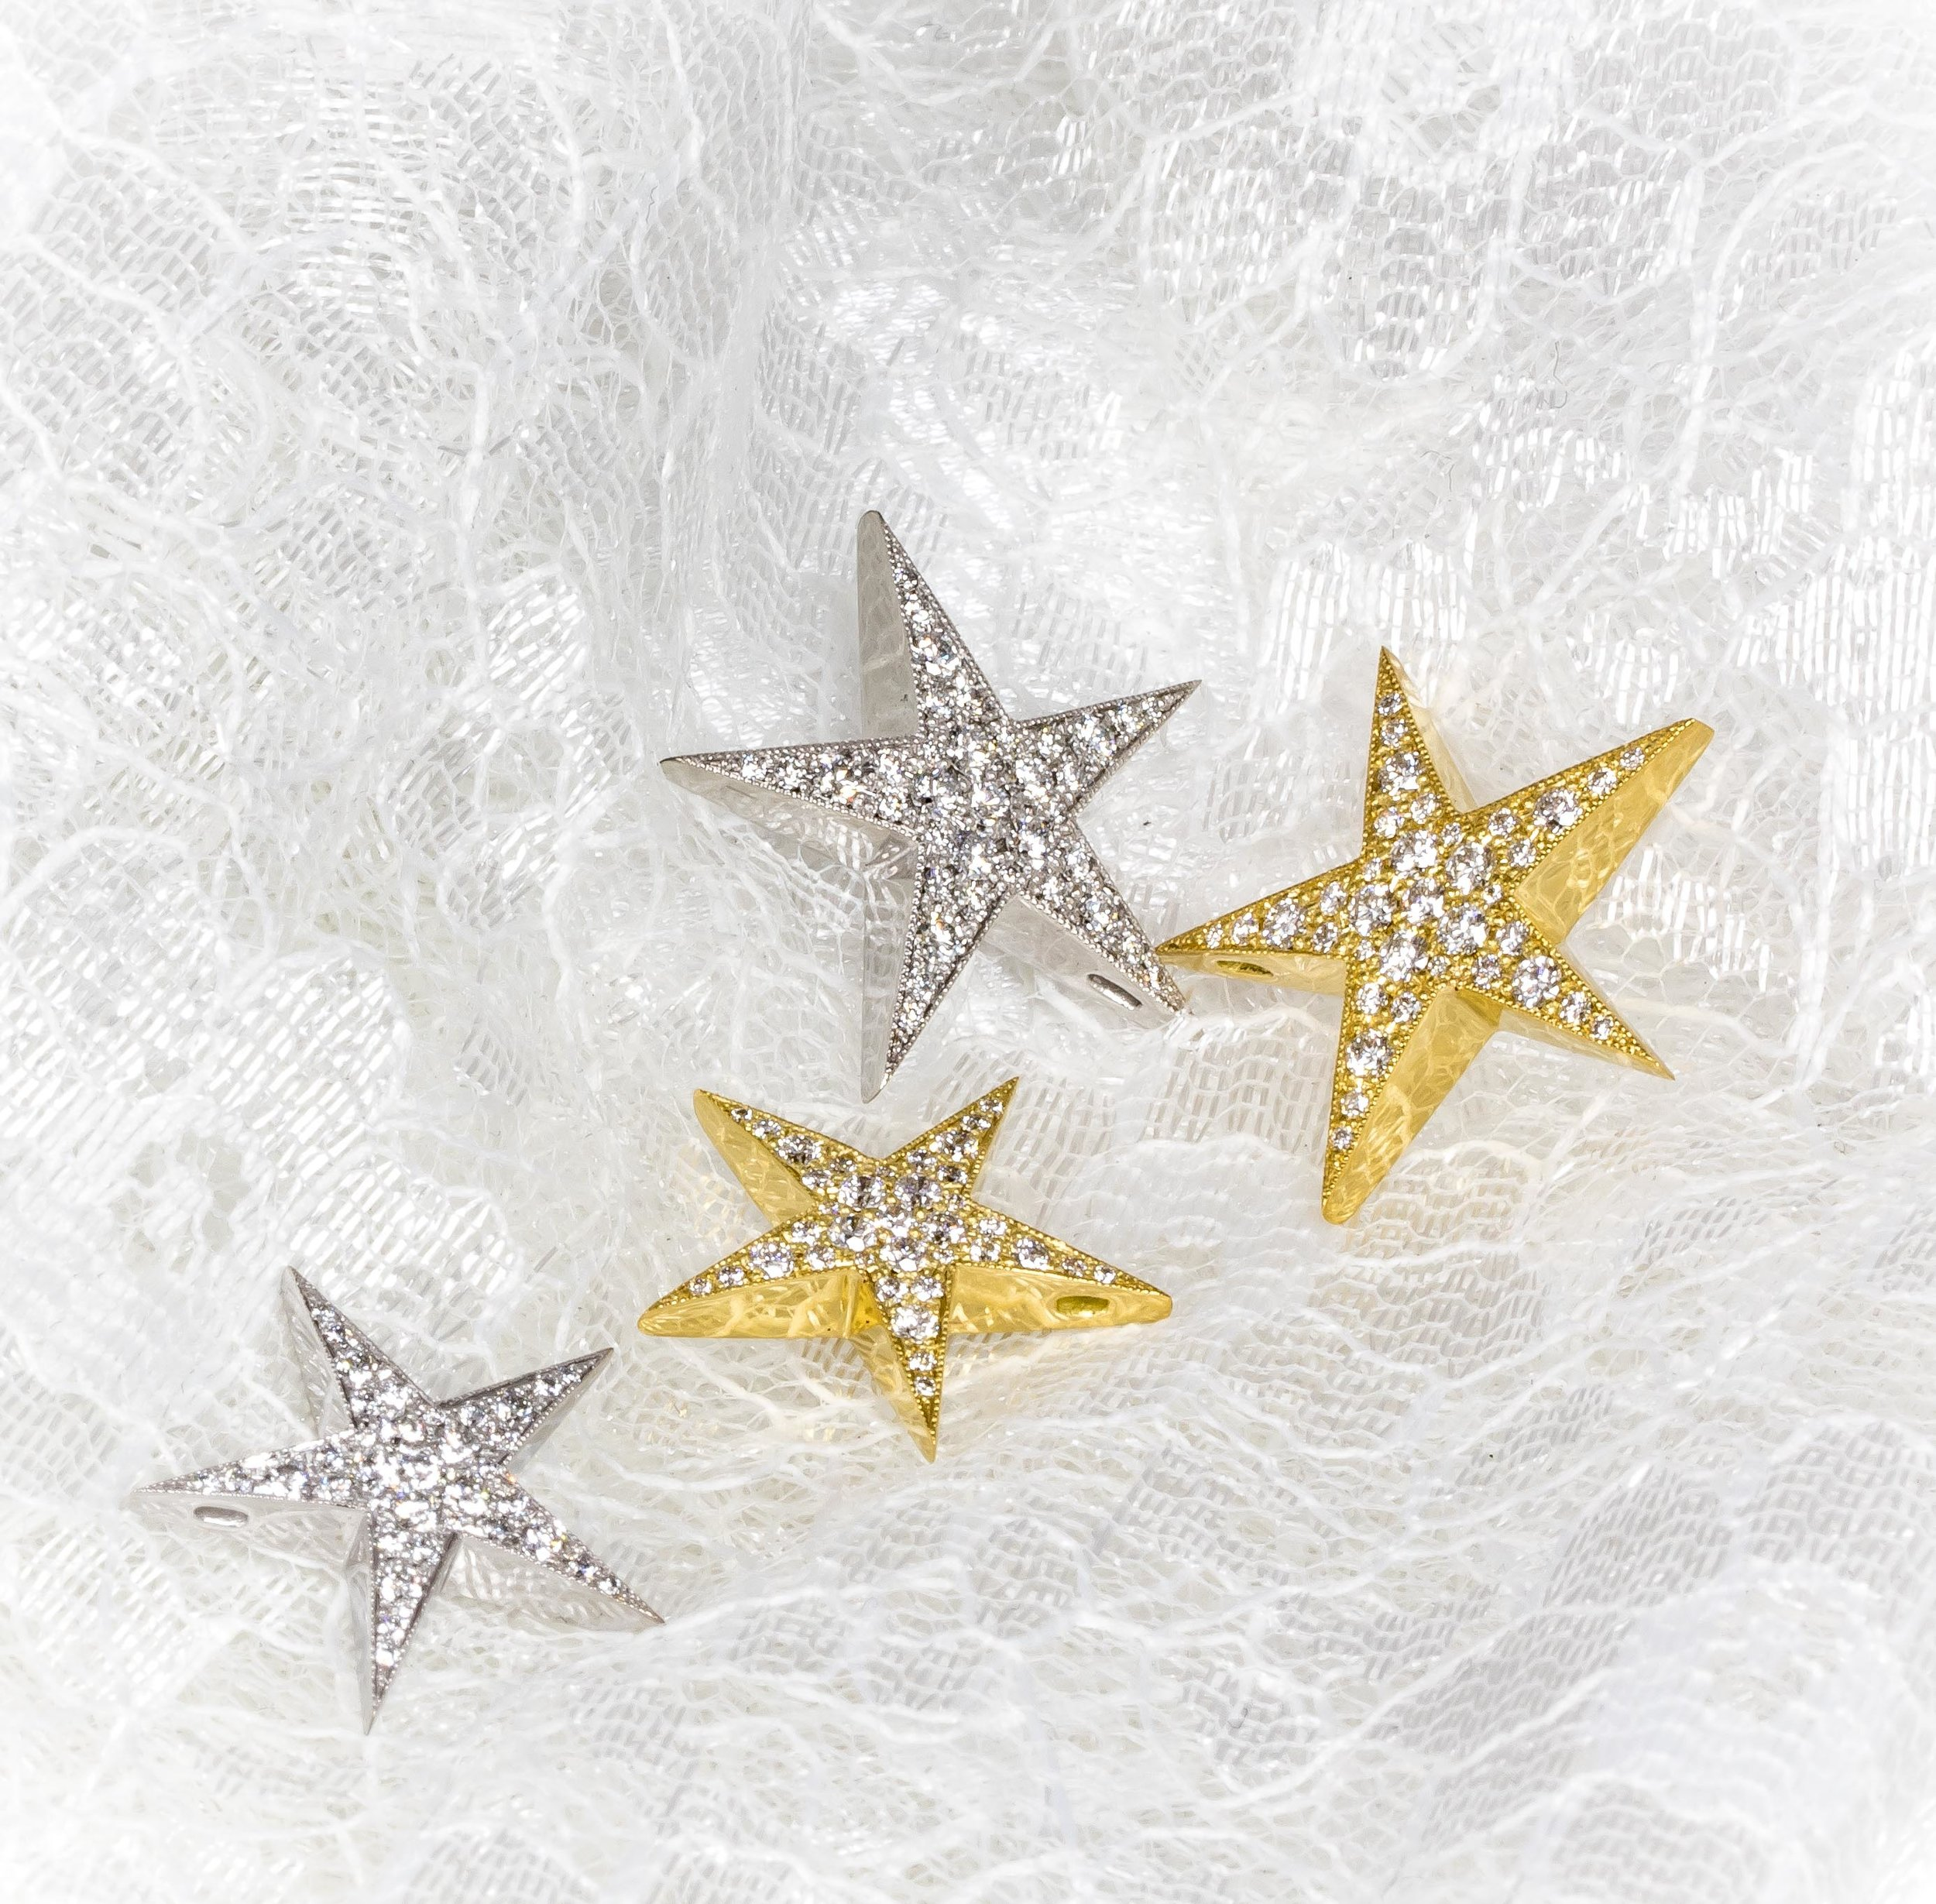 18ct yellow and white gold diamond set star pendants. Made in Chichester, England.